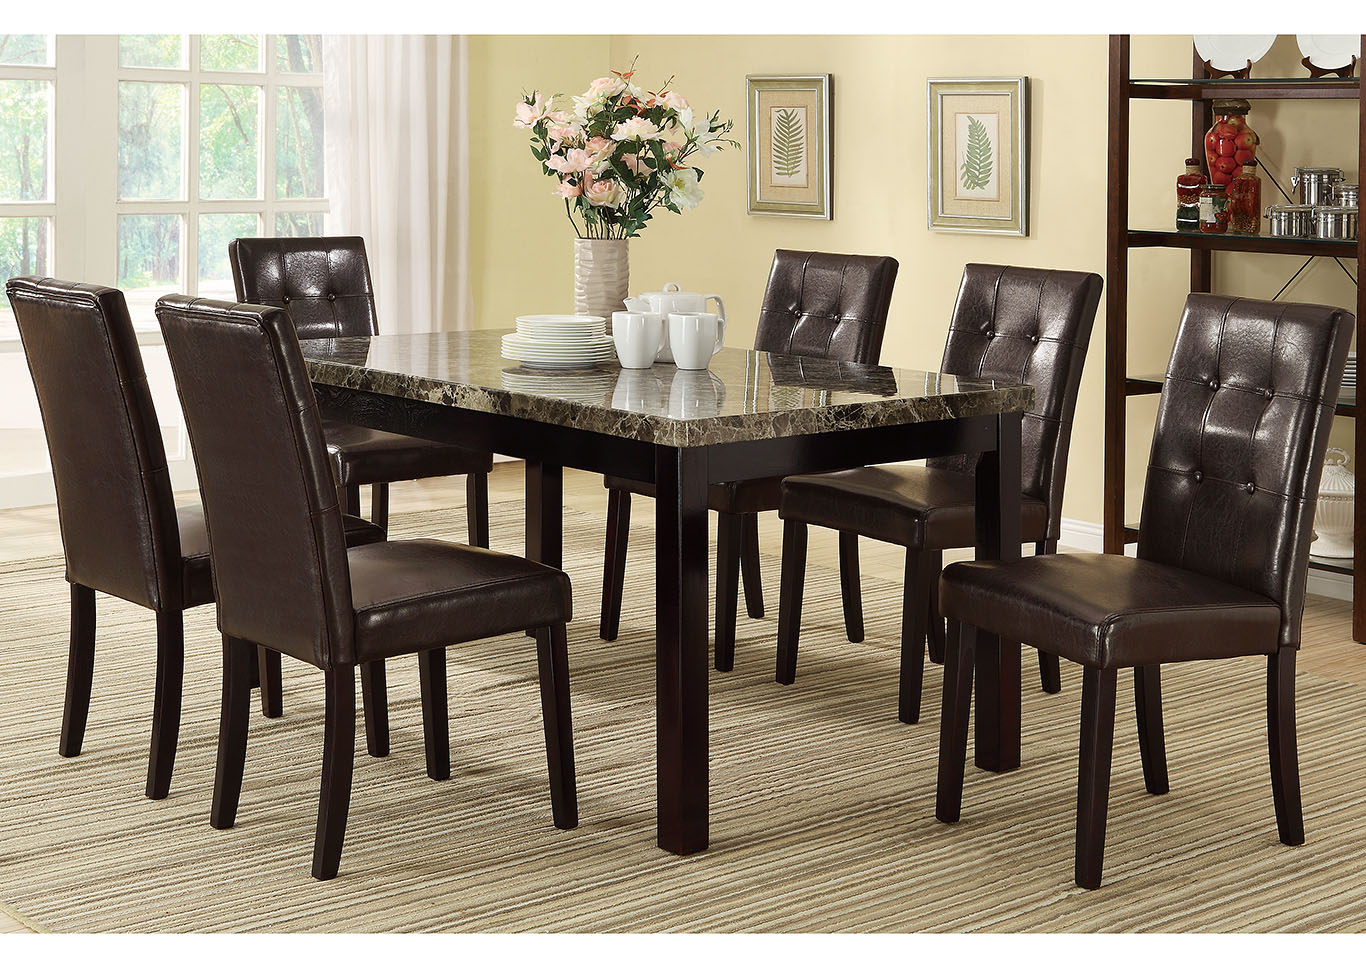 Leather Dining Room Chairs Market Furniture Paterson Nj Brown Faux Leather Dining Chair